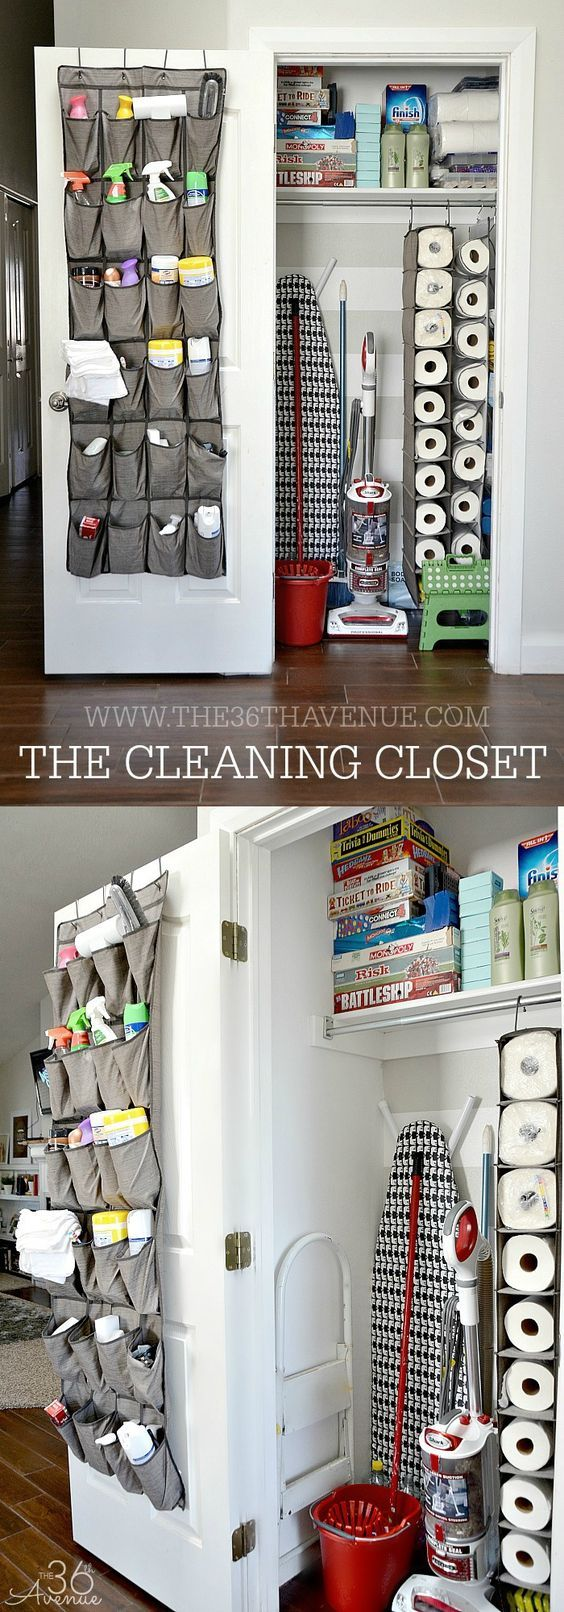 Cleaning Tips - The Cleaning Closet at the36thavenue.com Pin it now and clean it later!: